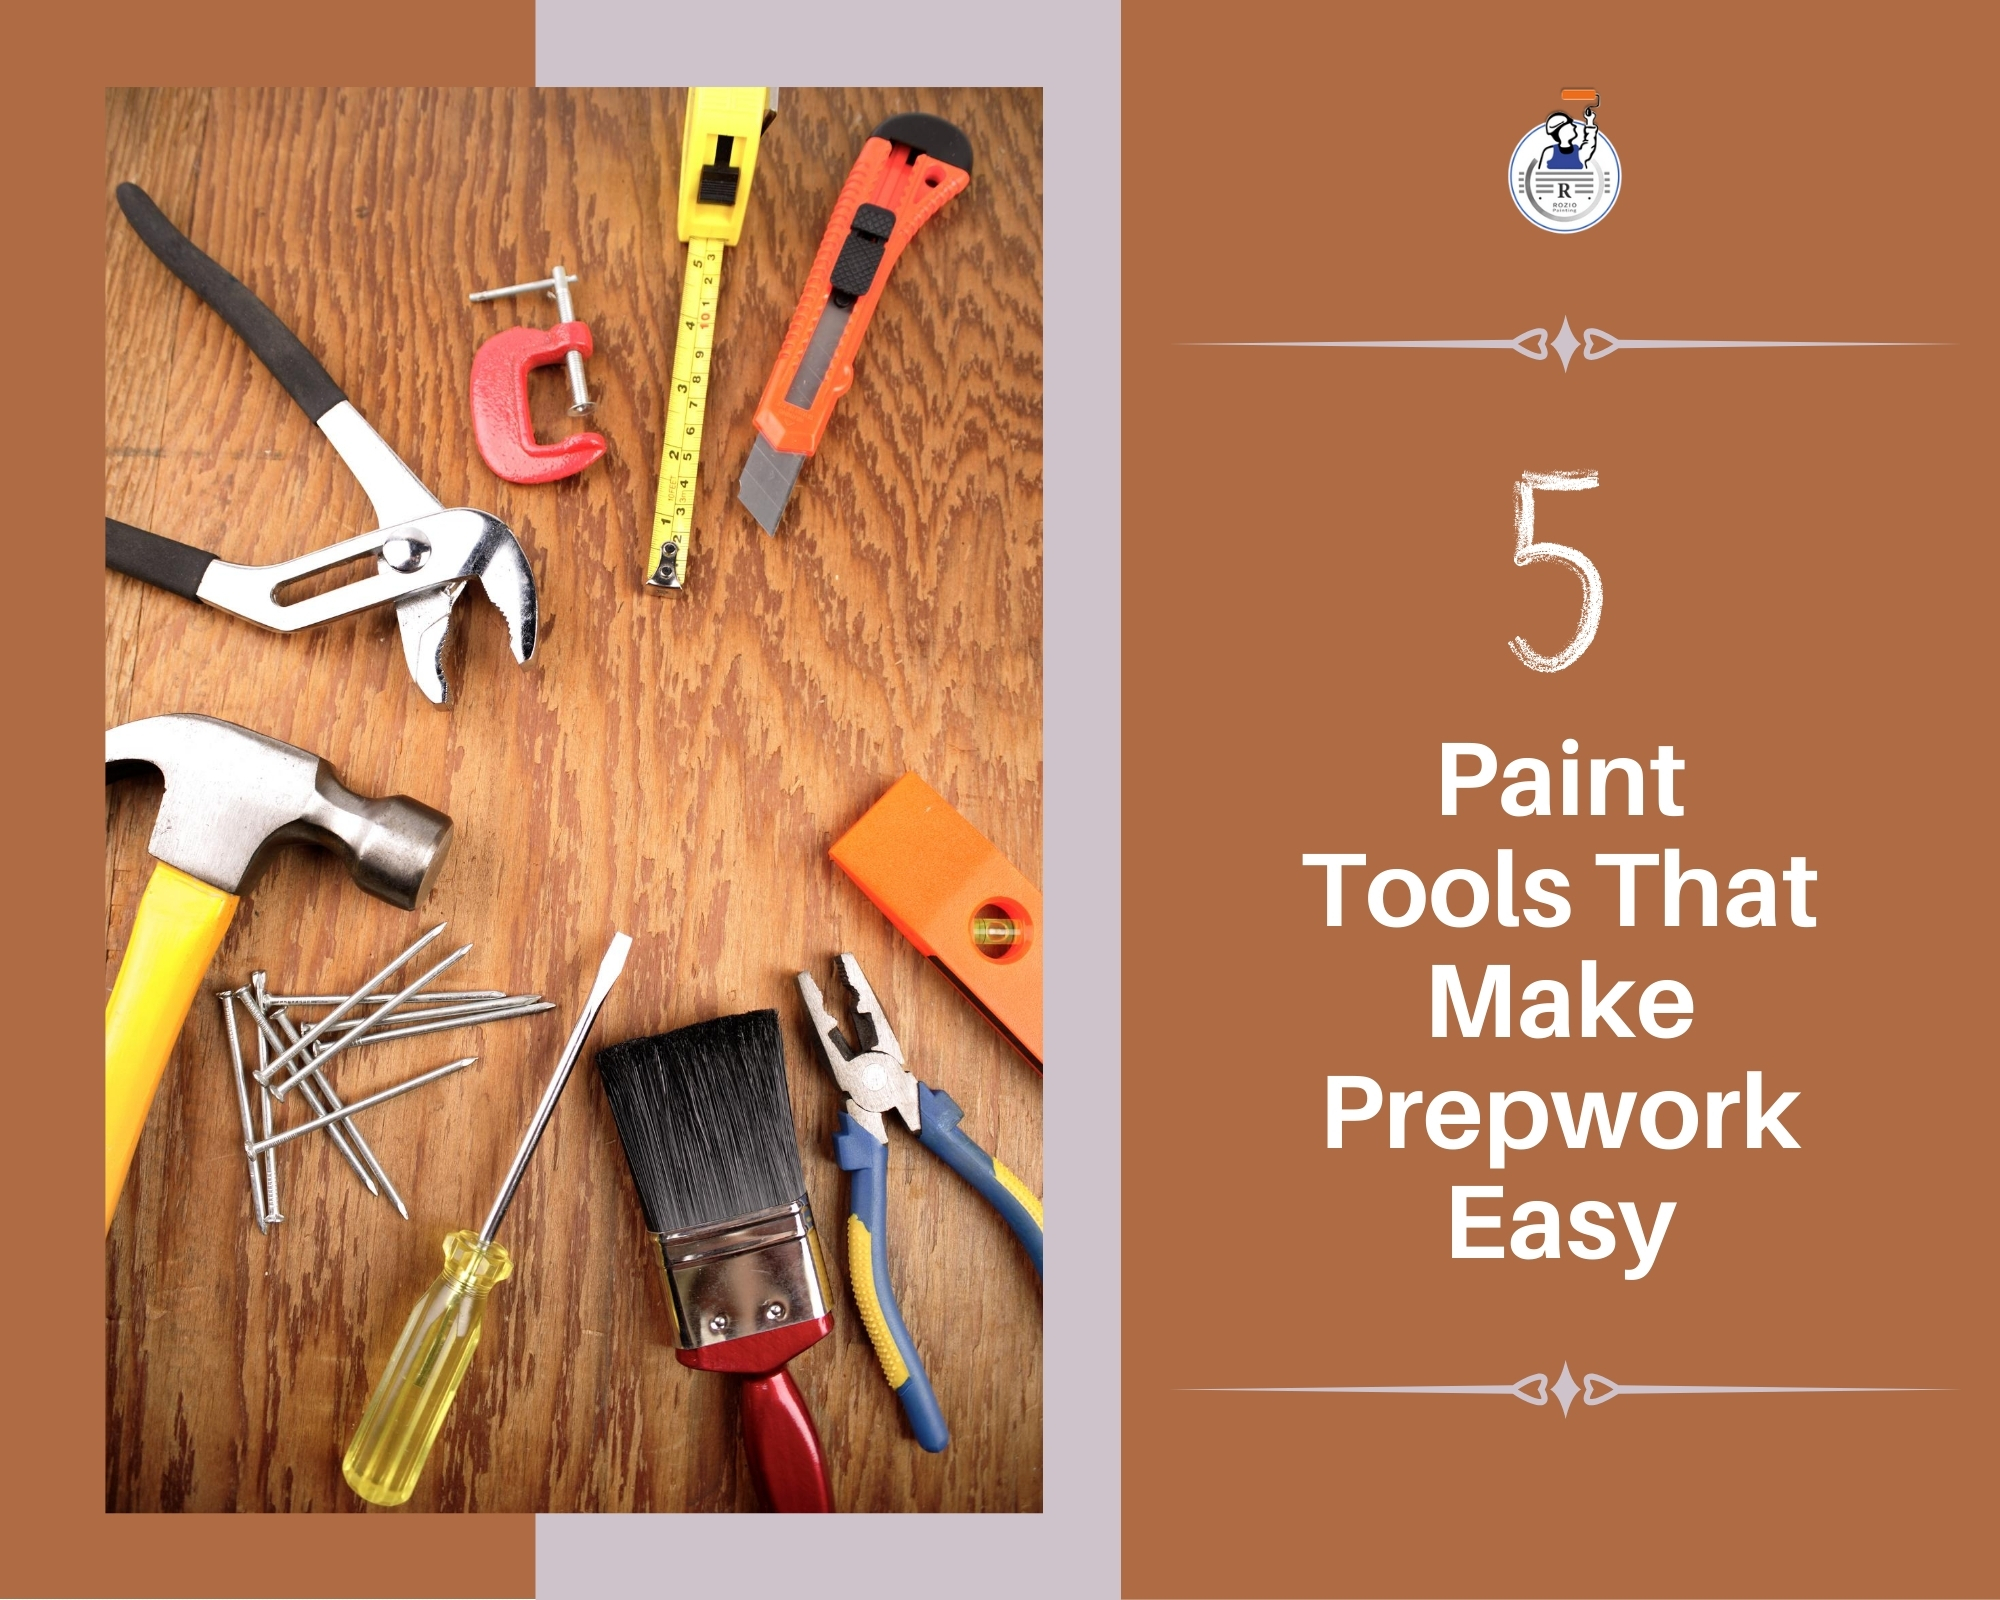 5‌ ‌Paint‌ ‌Tools‌ ‌That‌ ‌Make‌ ‌Prepwork‌ ‌Easy‌